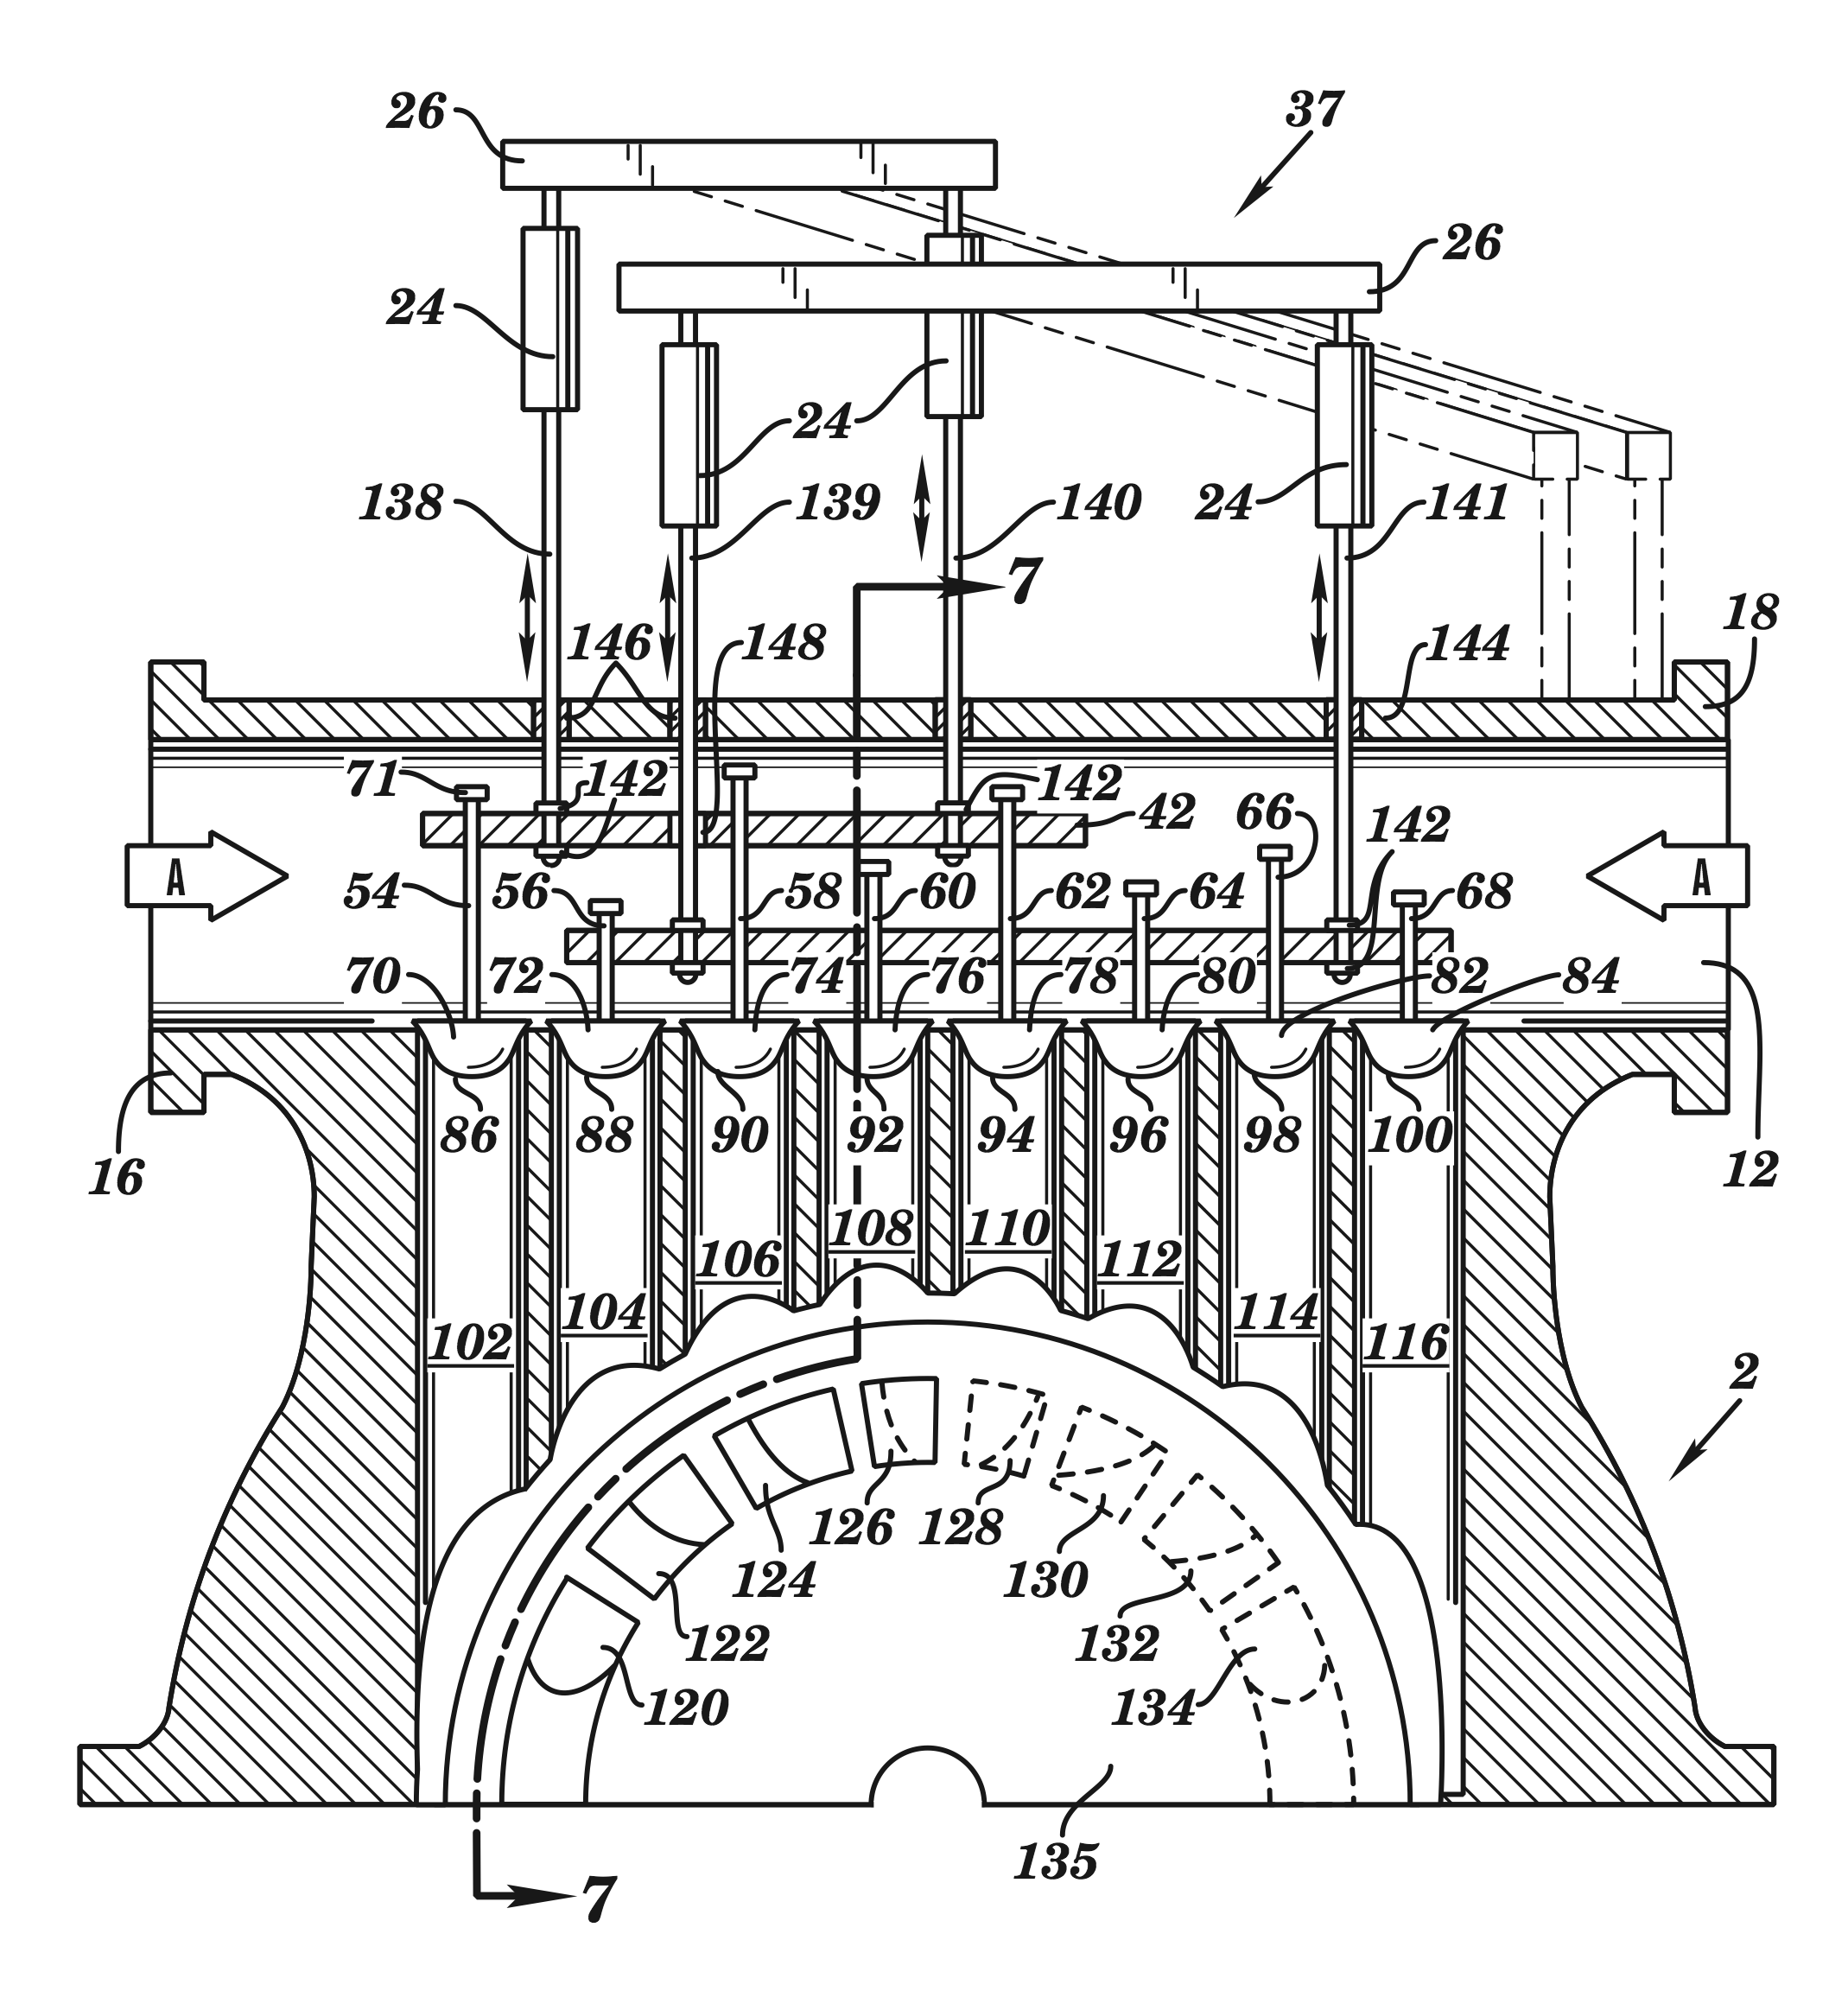 01_ptiserviceco_patent_drawing_mechanical.png